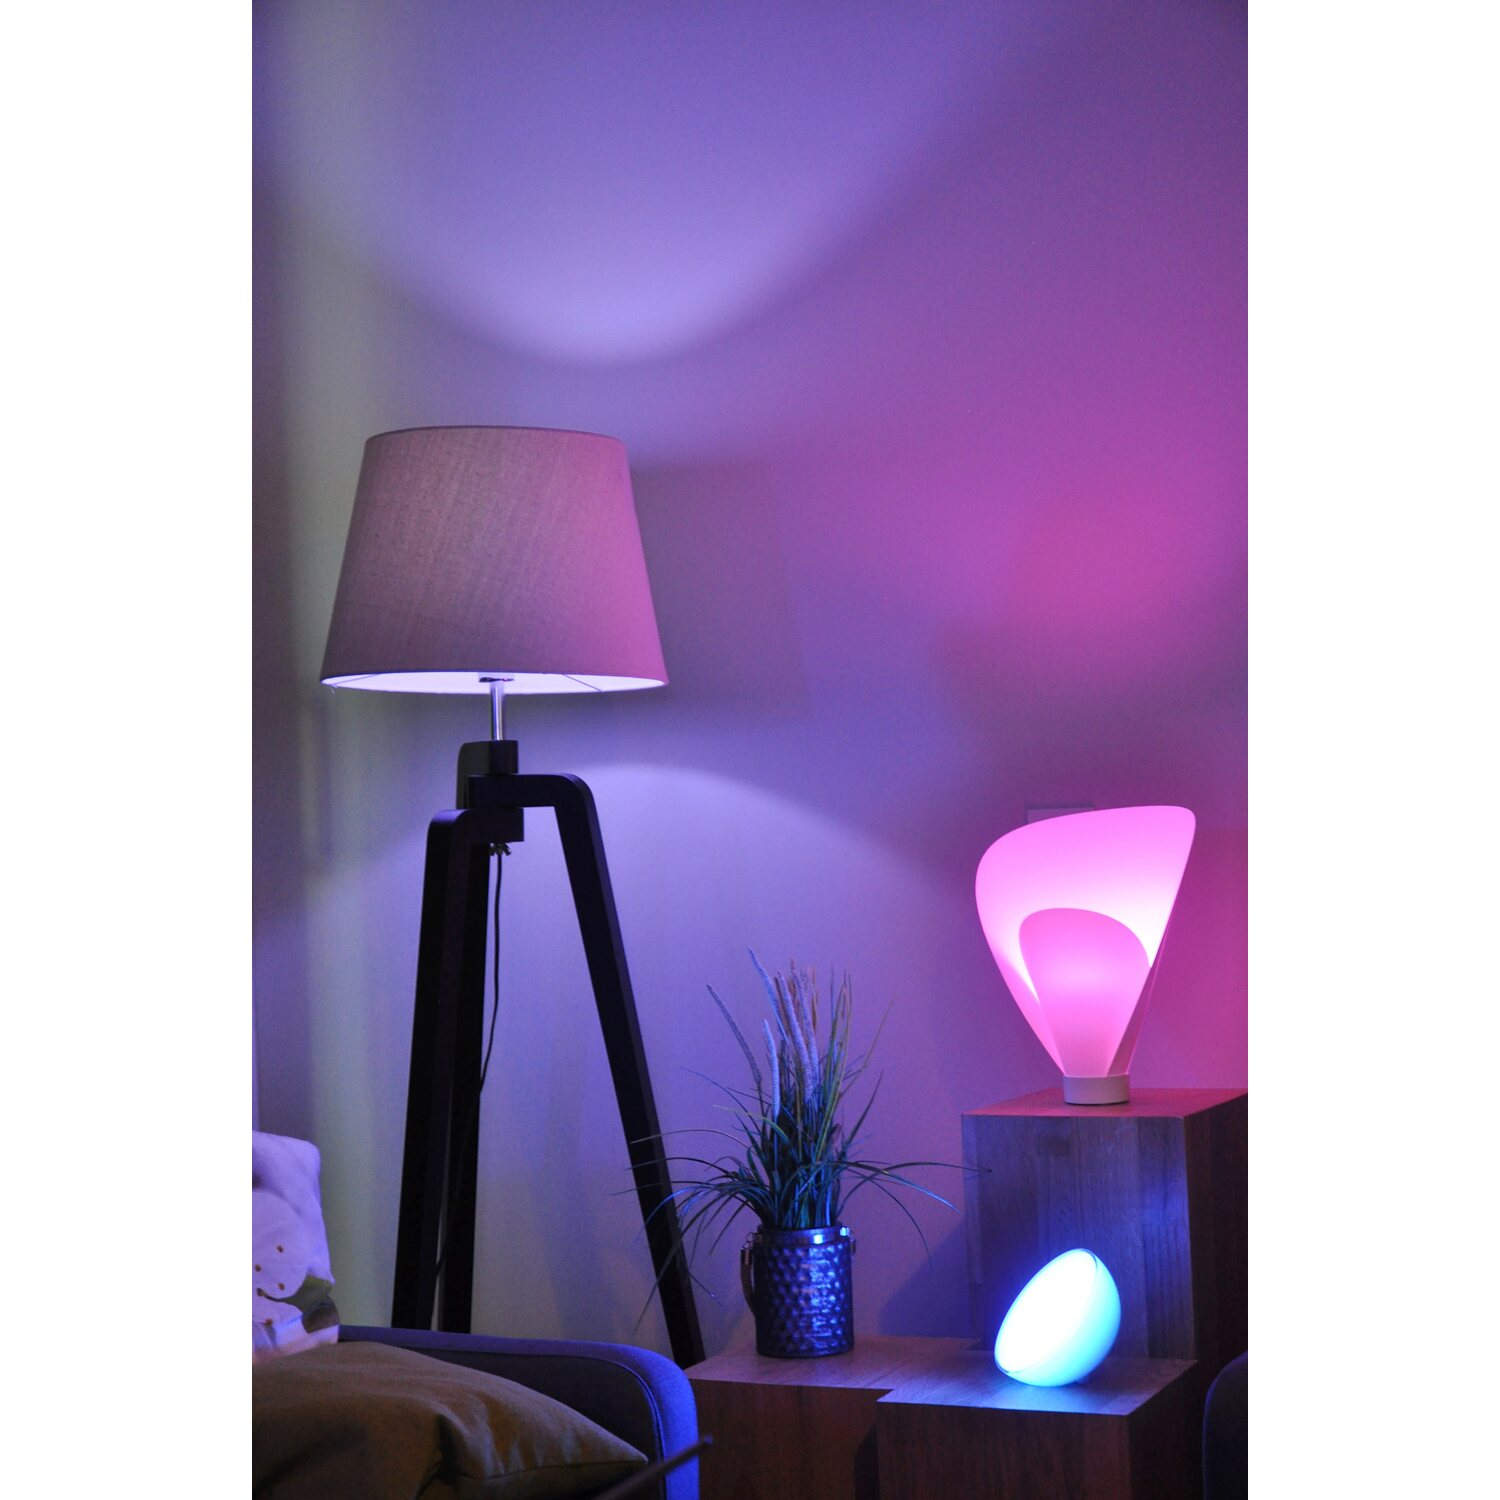 philips hue led lampe e27 10w wei mehrfarbig color ambience erweiterung eek a kaufen bei obi. Black Bedroom Furniture Sets. Home Design Ideas